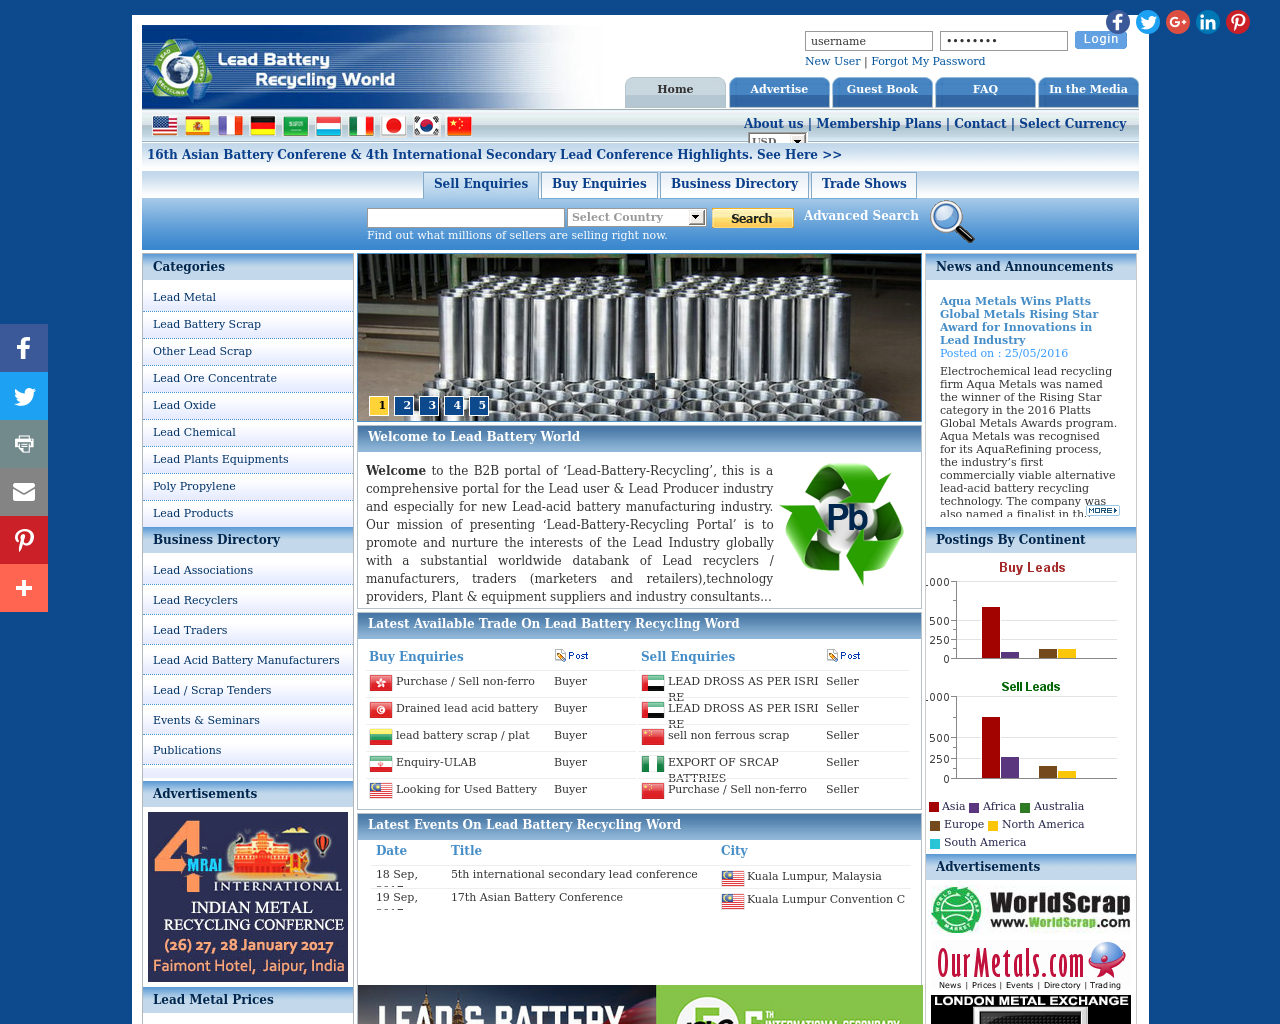 Lead-Battery-Recycling-World-Advertising-Reviews-Pricing